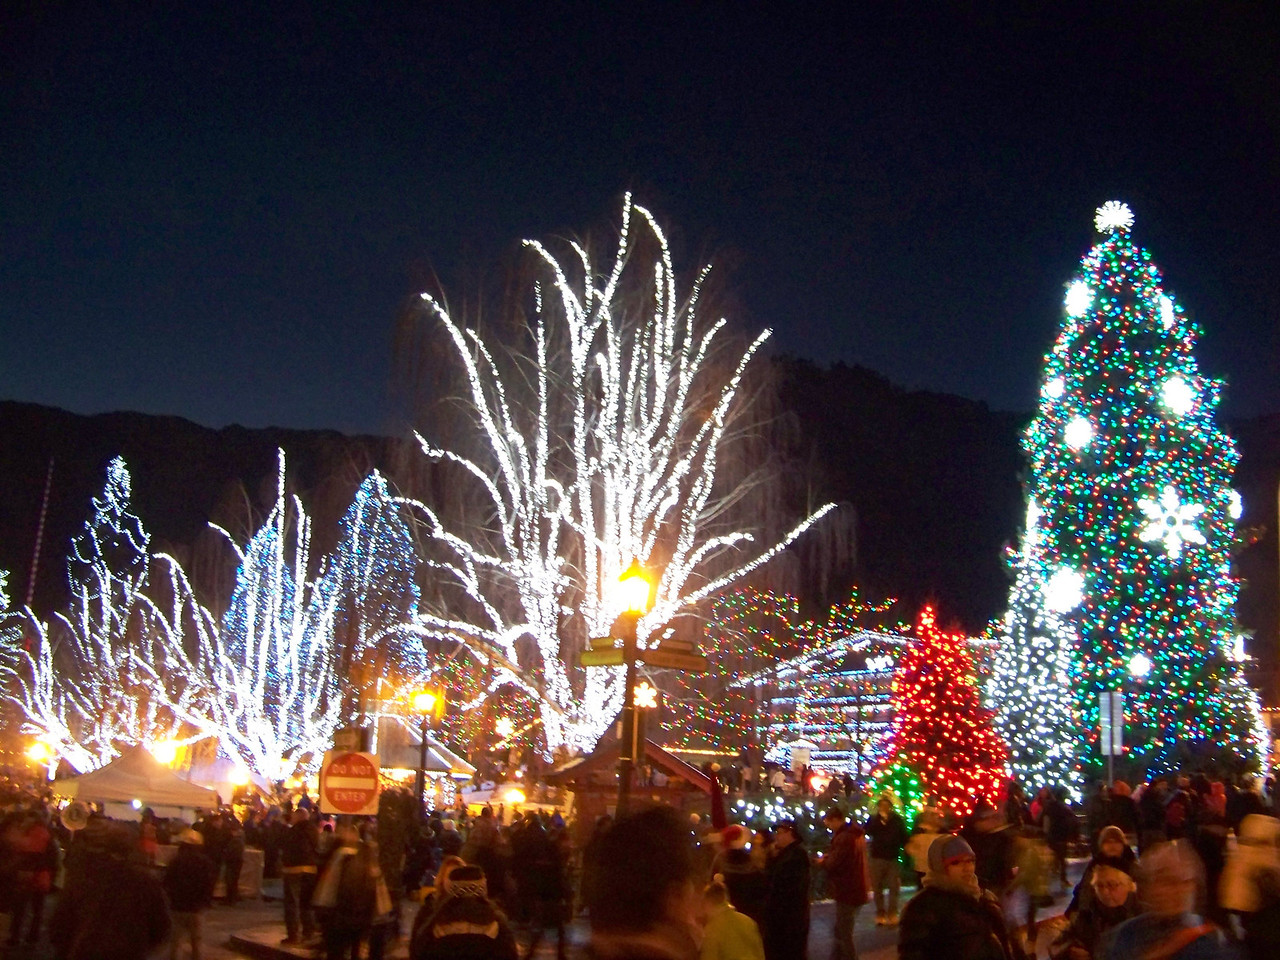 """Christmas lights in the park. [Leavenworth, WA - December 2013 - <b><a target=""""_new"""" href=""""http://youtu.be/NqCqDCOY_tc"""">Watch my video here</a></b>]"""